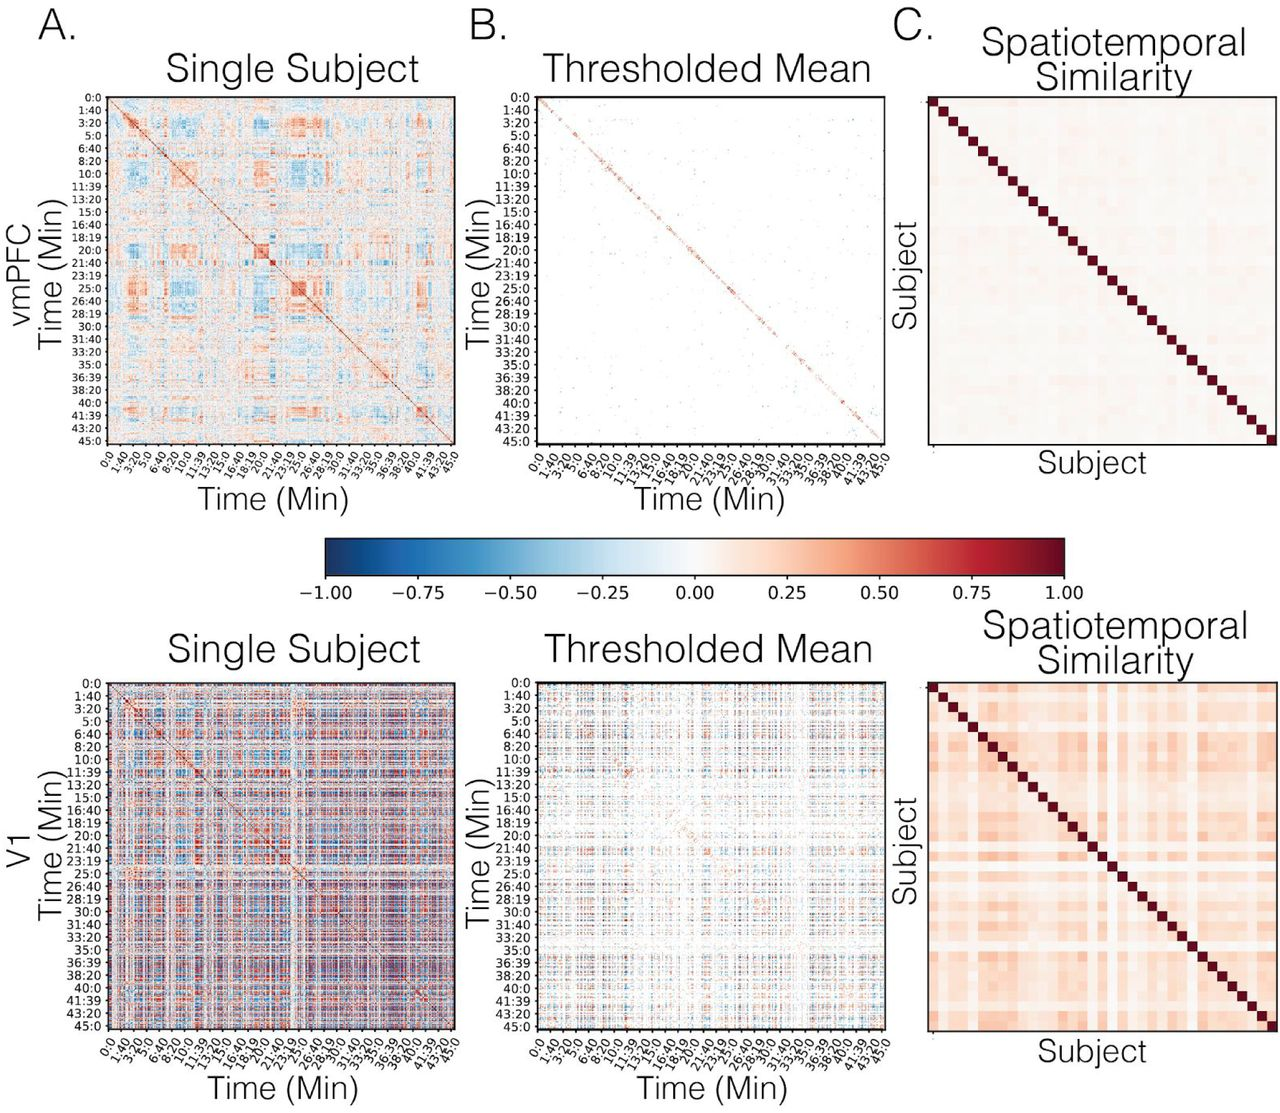 Endogenous variation in ventromedial prefrontal cortex state